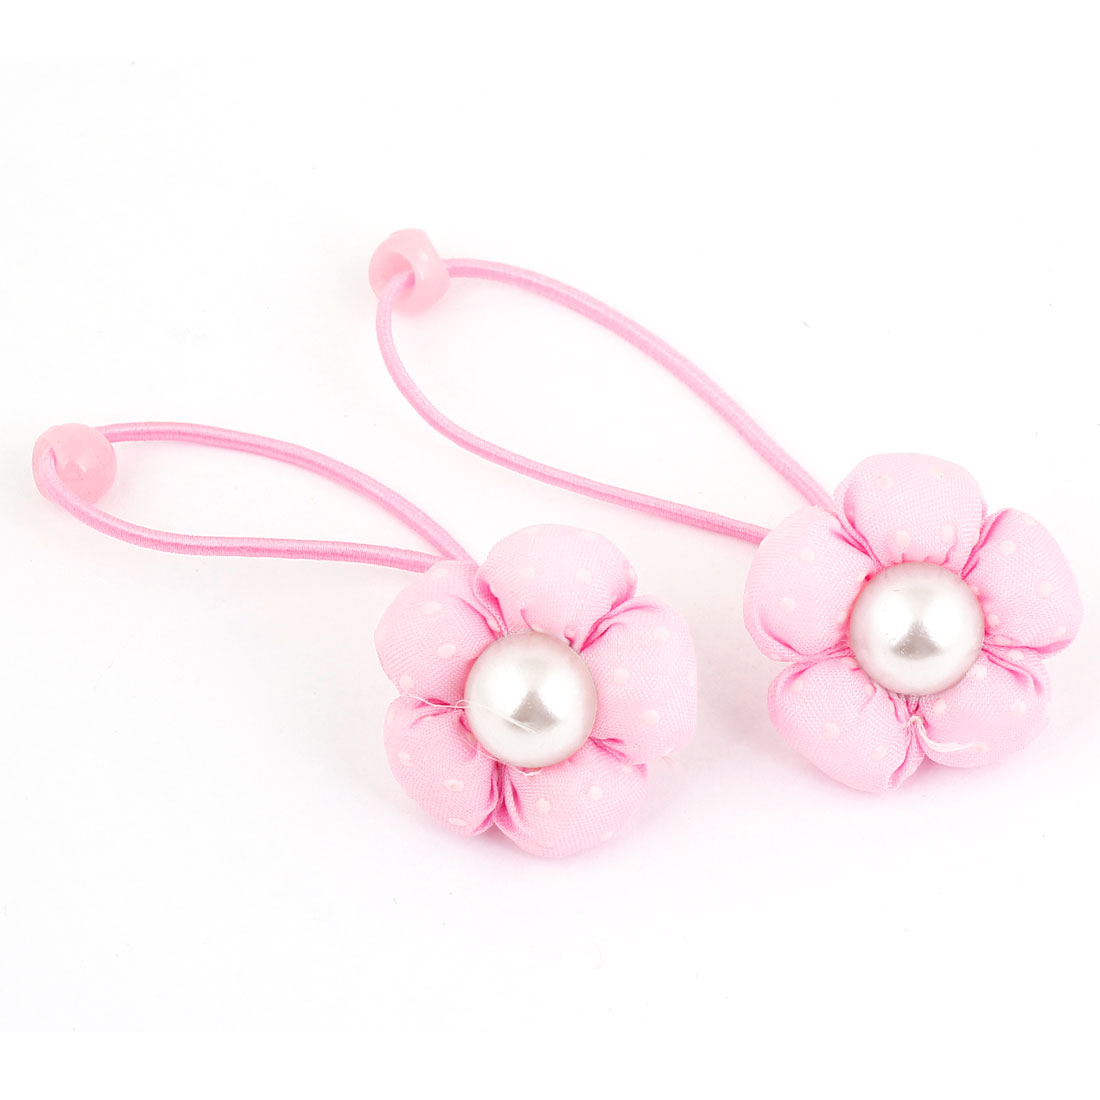 2PCS Pink Flower Faux Pearl Accent Stretch Hair Tie Ponytail Braid Holder